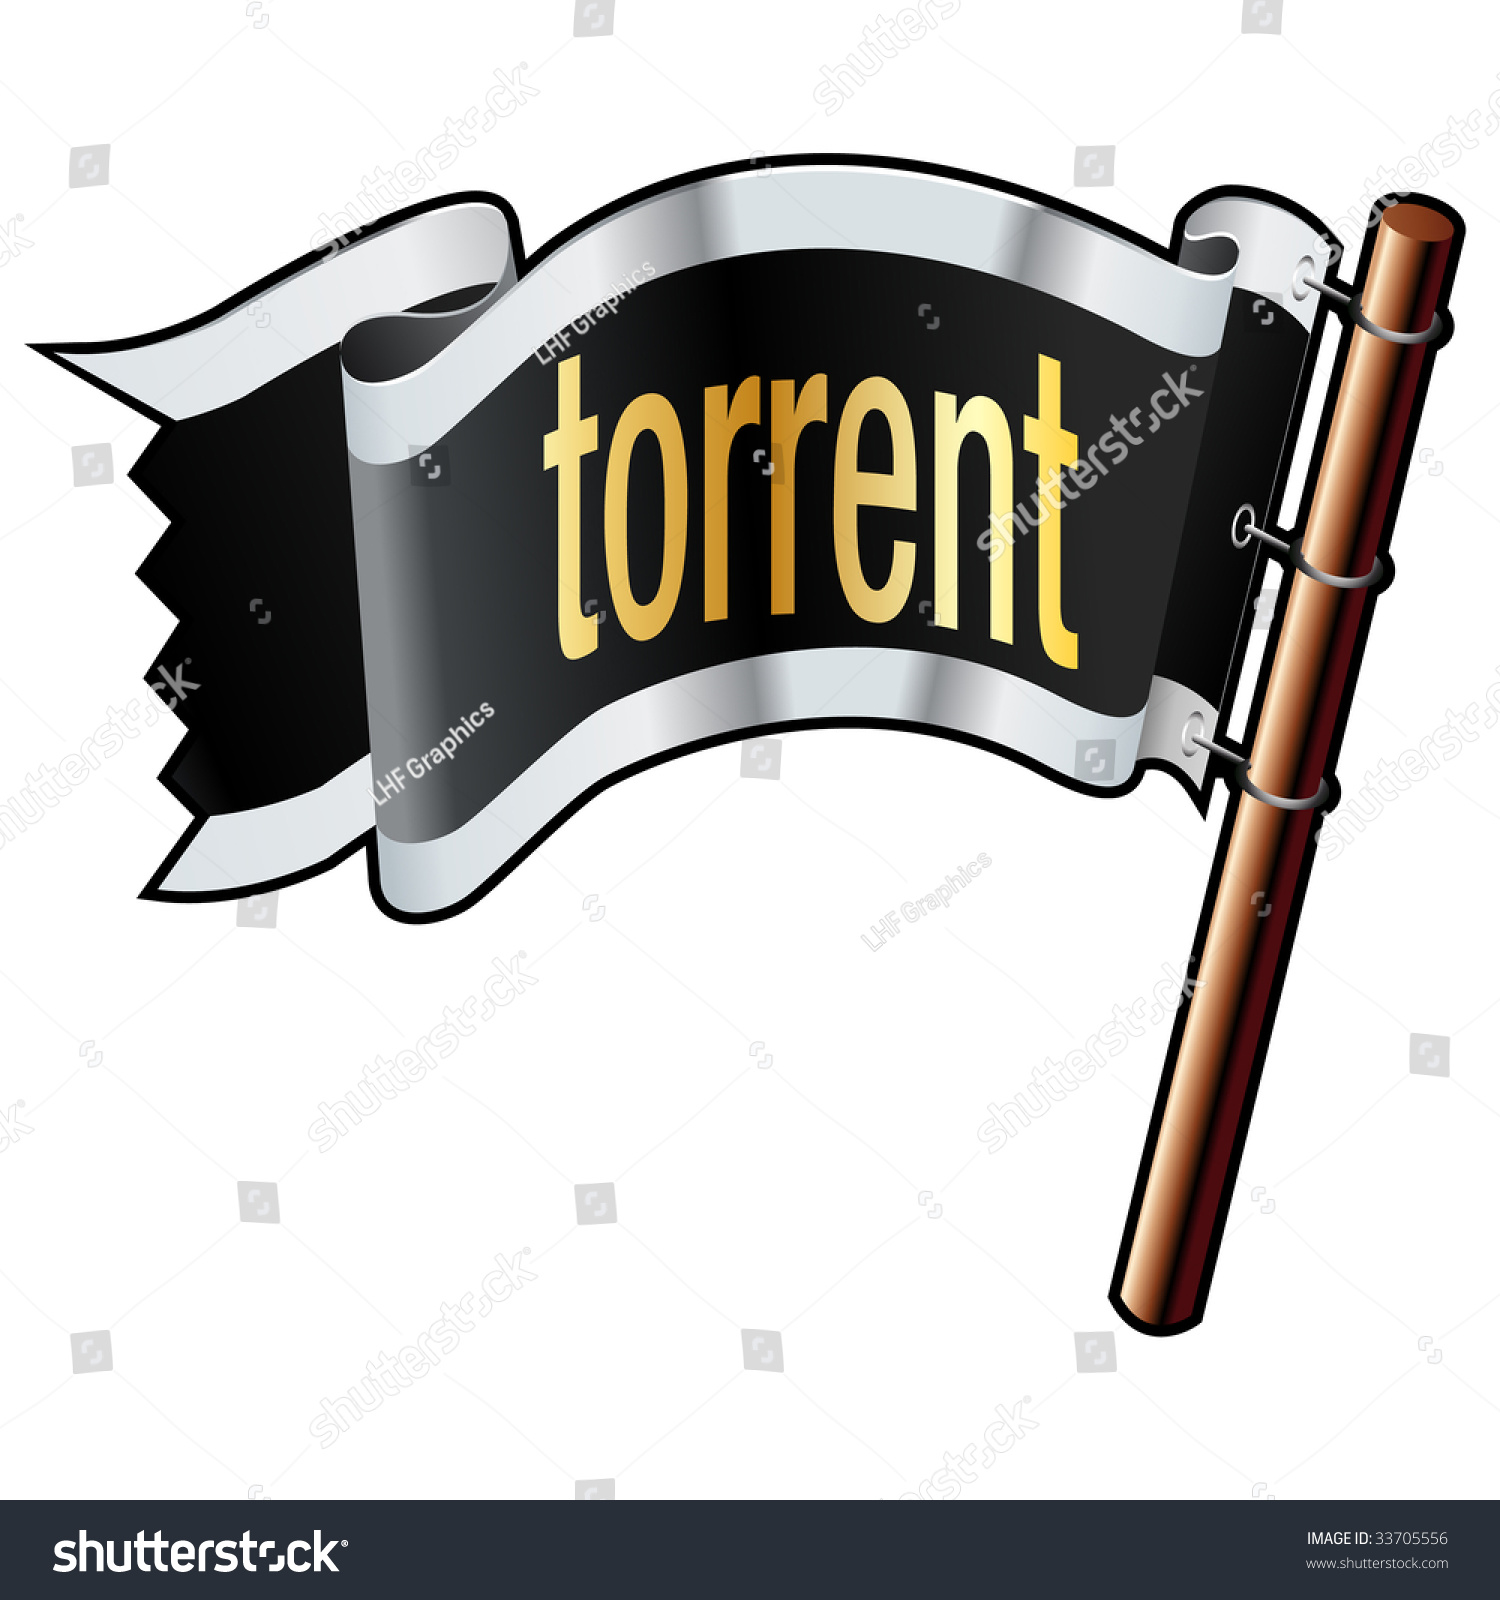 Shutterstock images torrent file